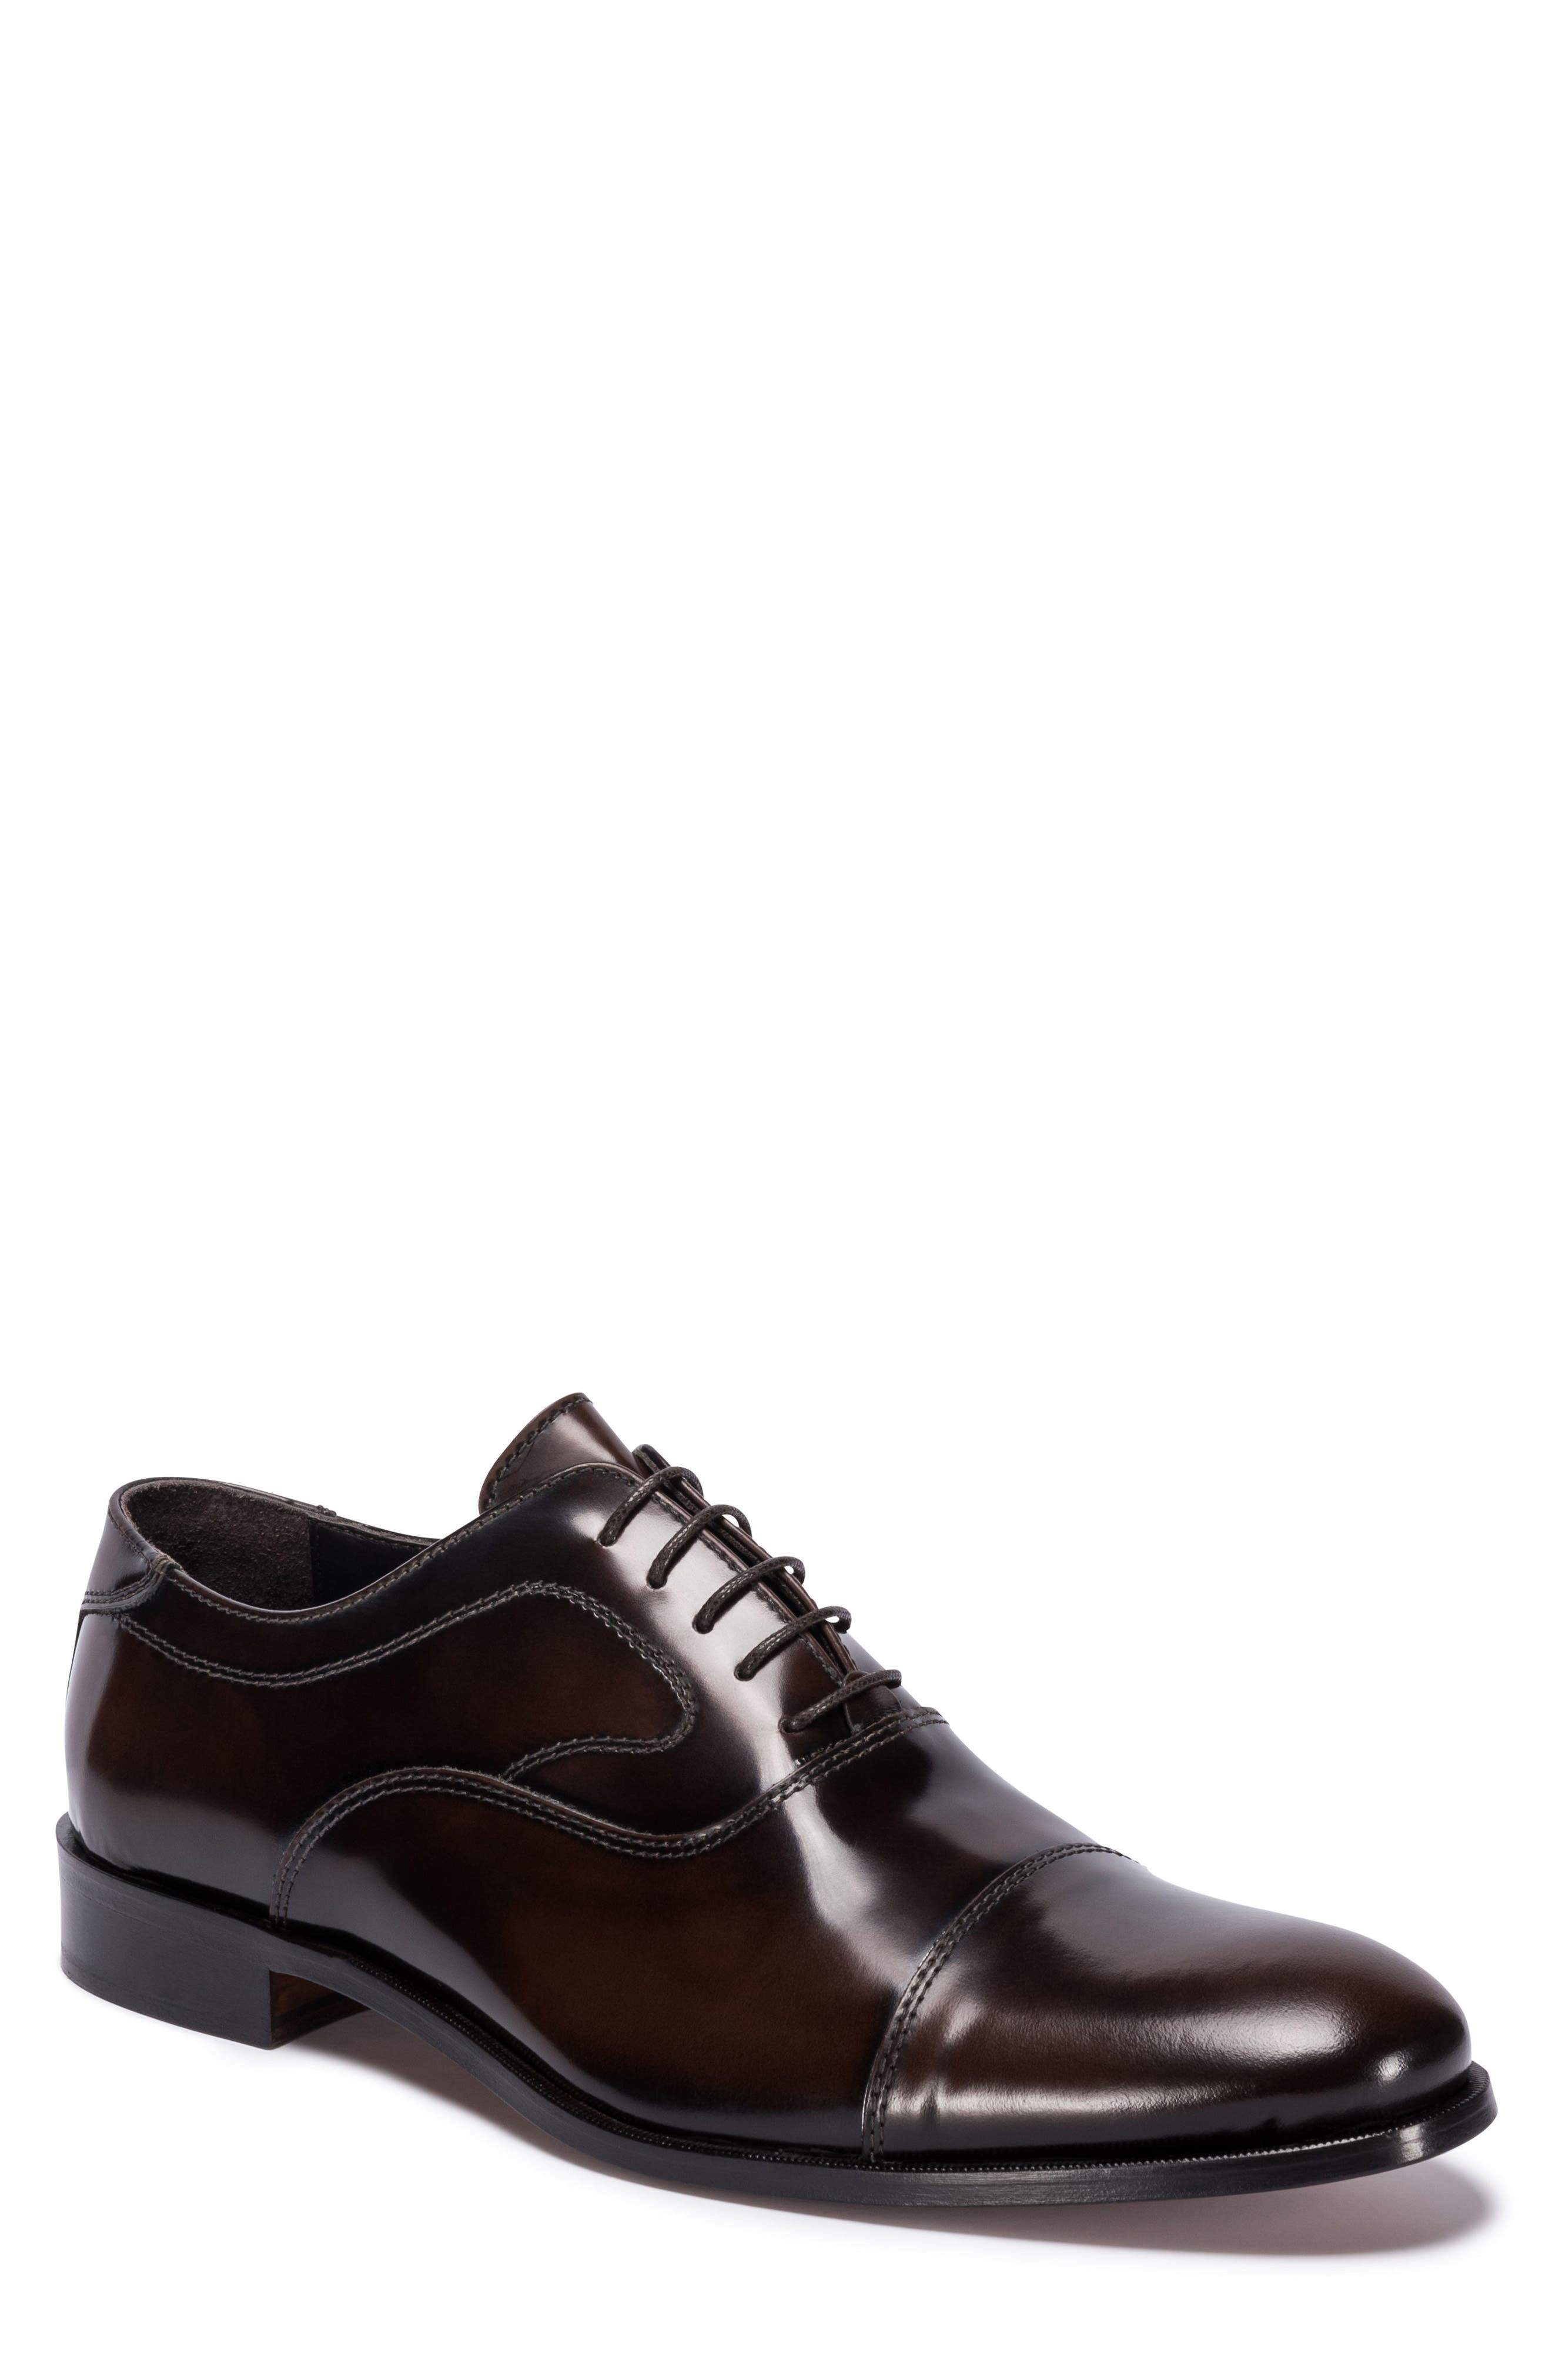 Garda Cap Toe Oxford,                             Main thumbnail 1, color,                             203